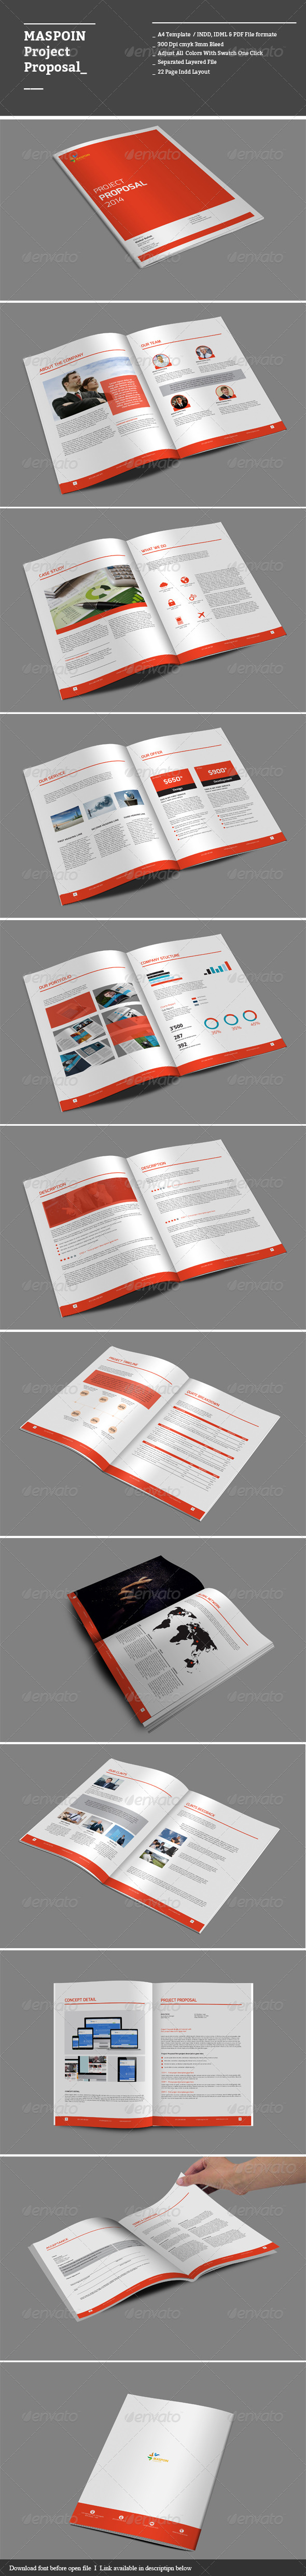 GraphicRiver Maspoin Project Proposal 8659176